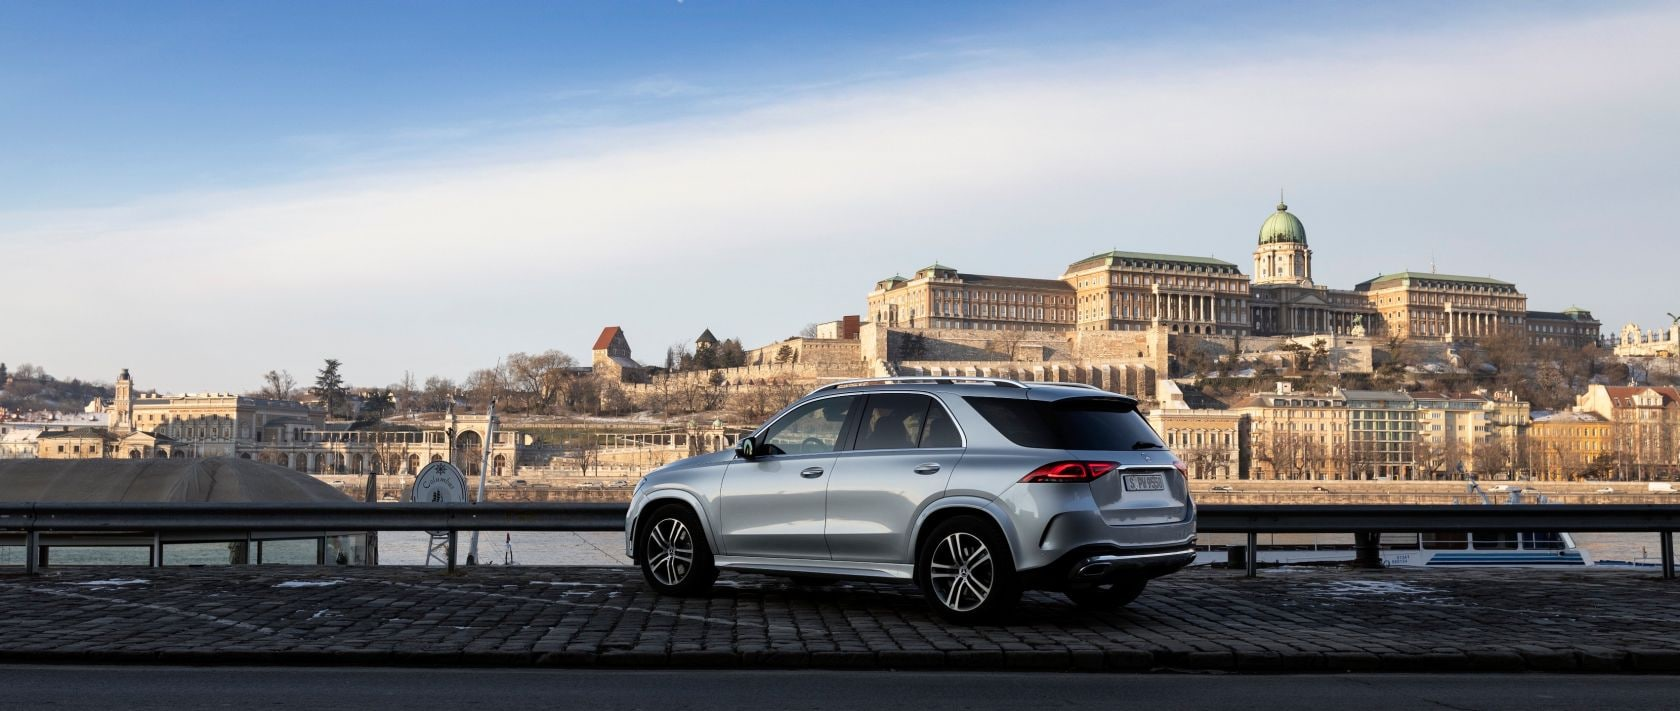 Mercedes-Benz GLE 300 d 4MATIC (V 167) in iridium silver metallic: side view.